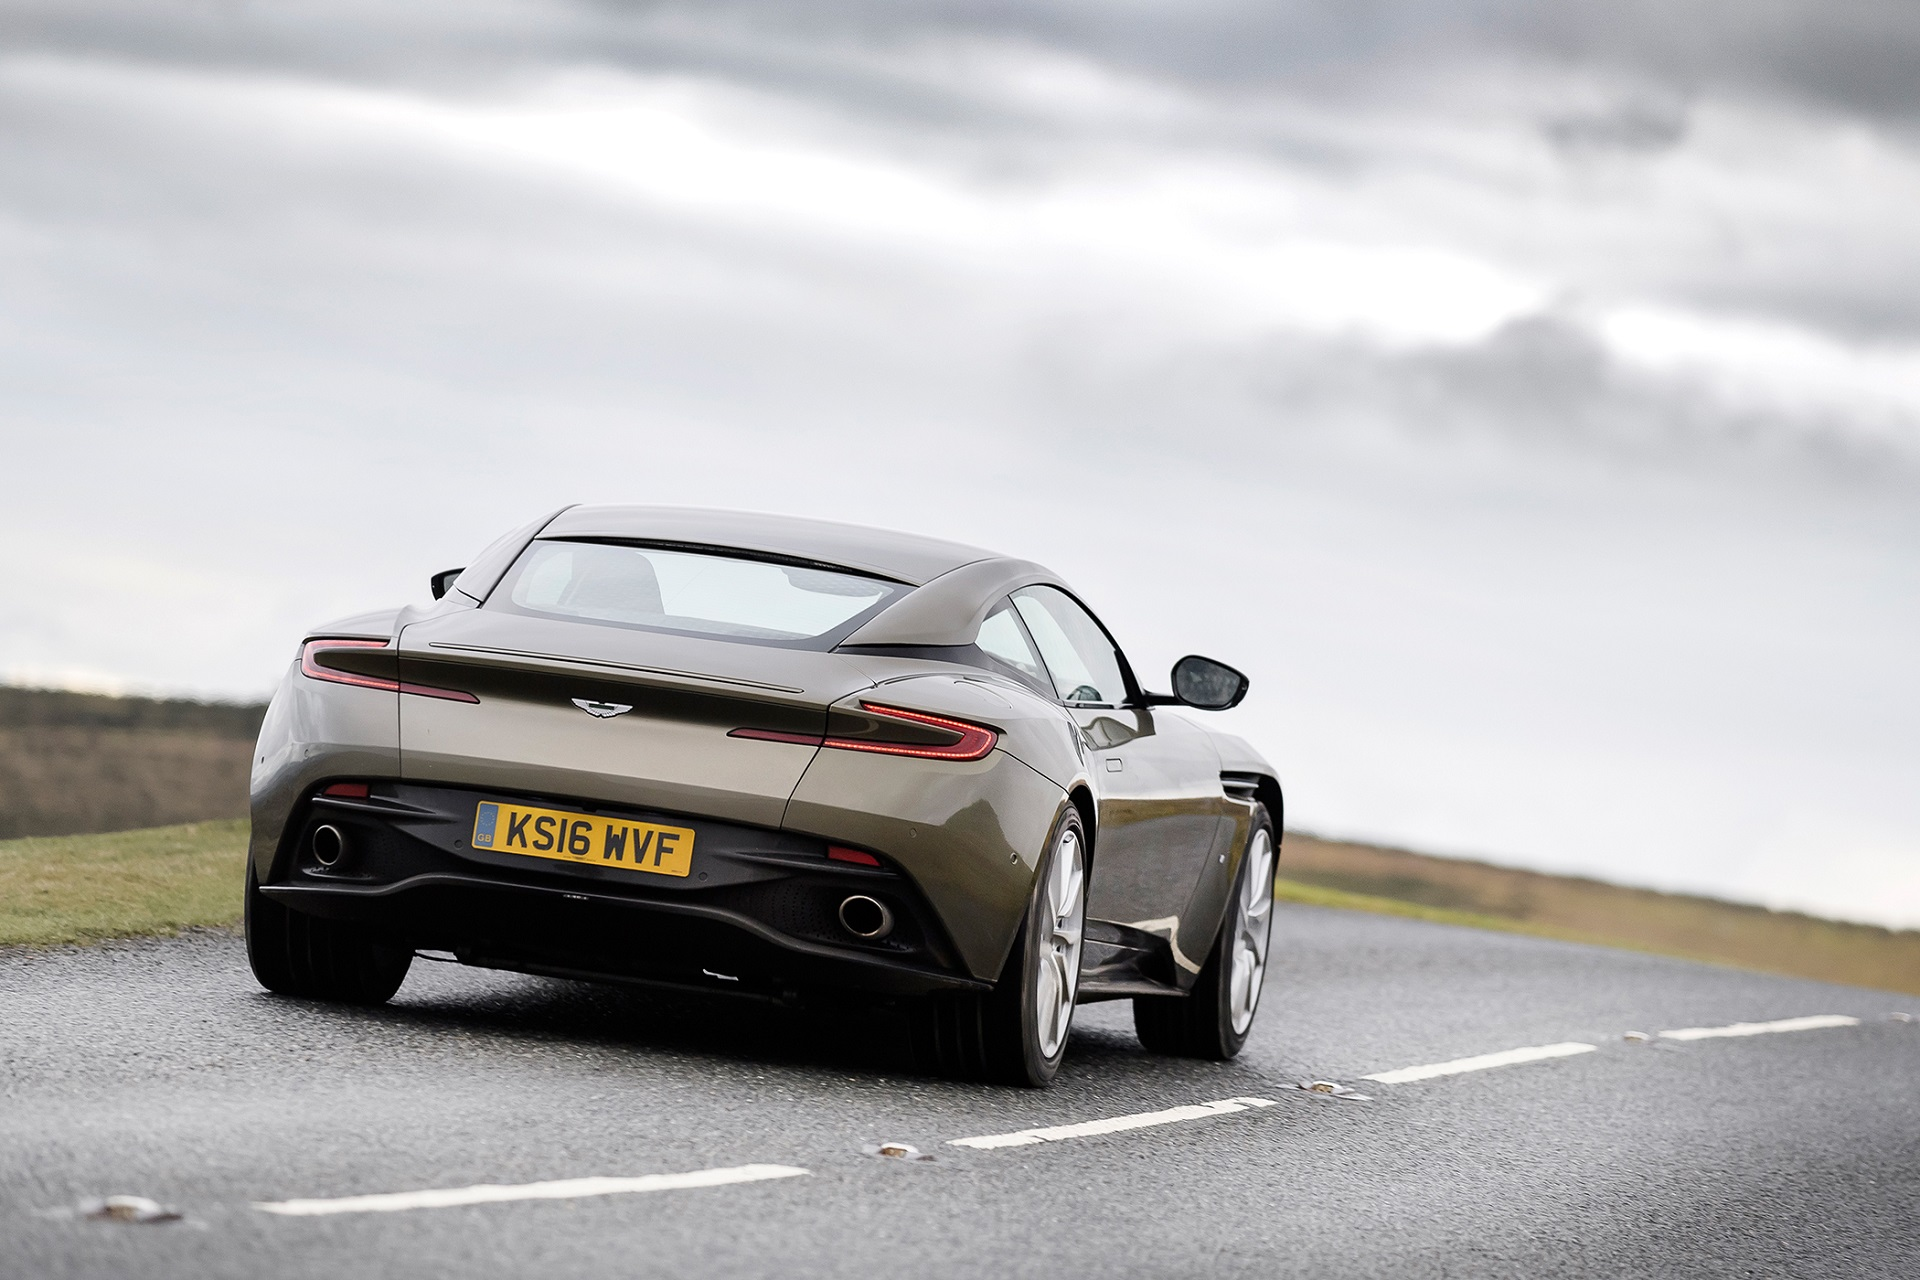 Aston Martin DB11 on the open road